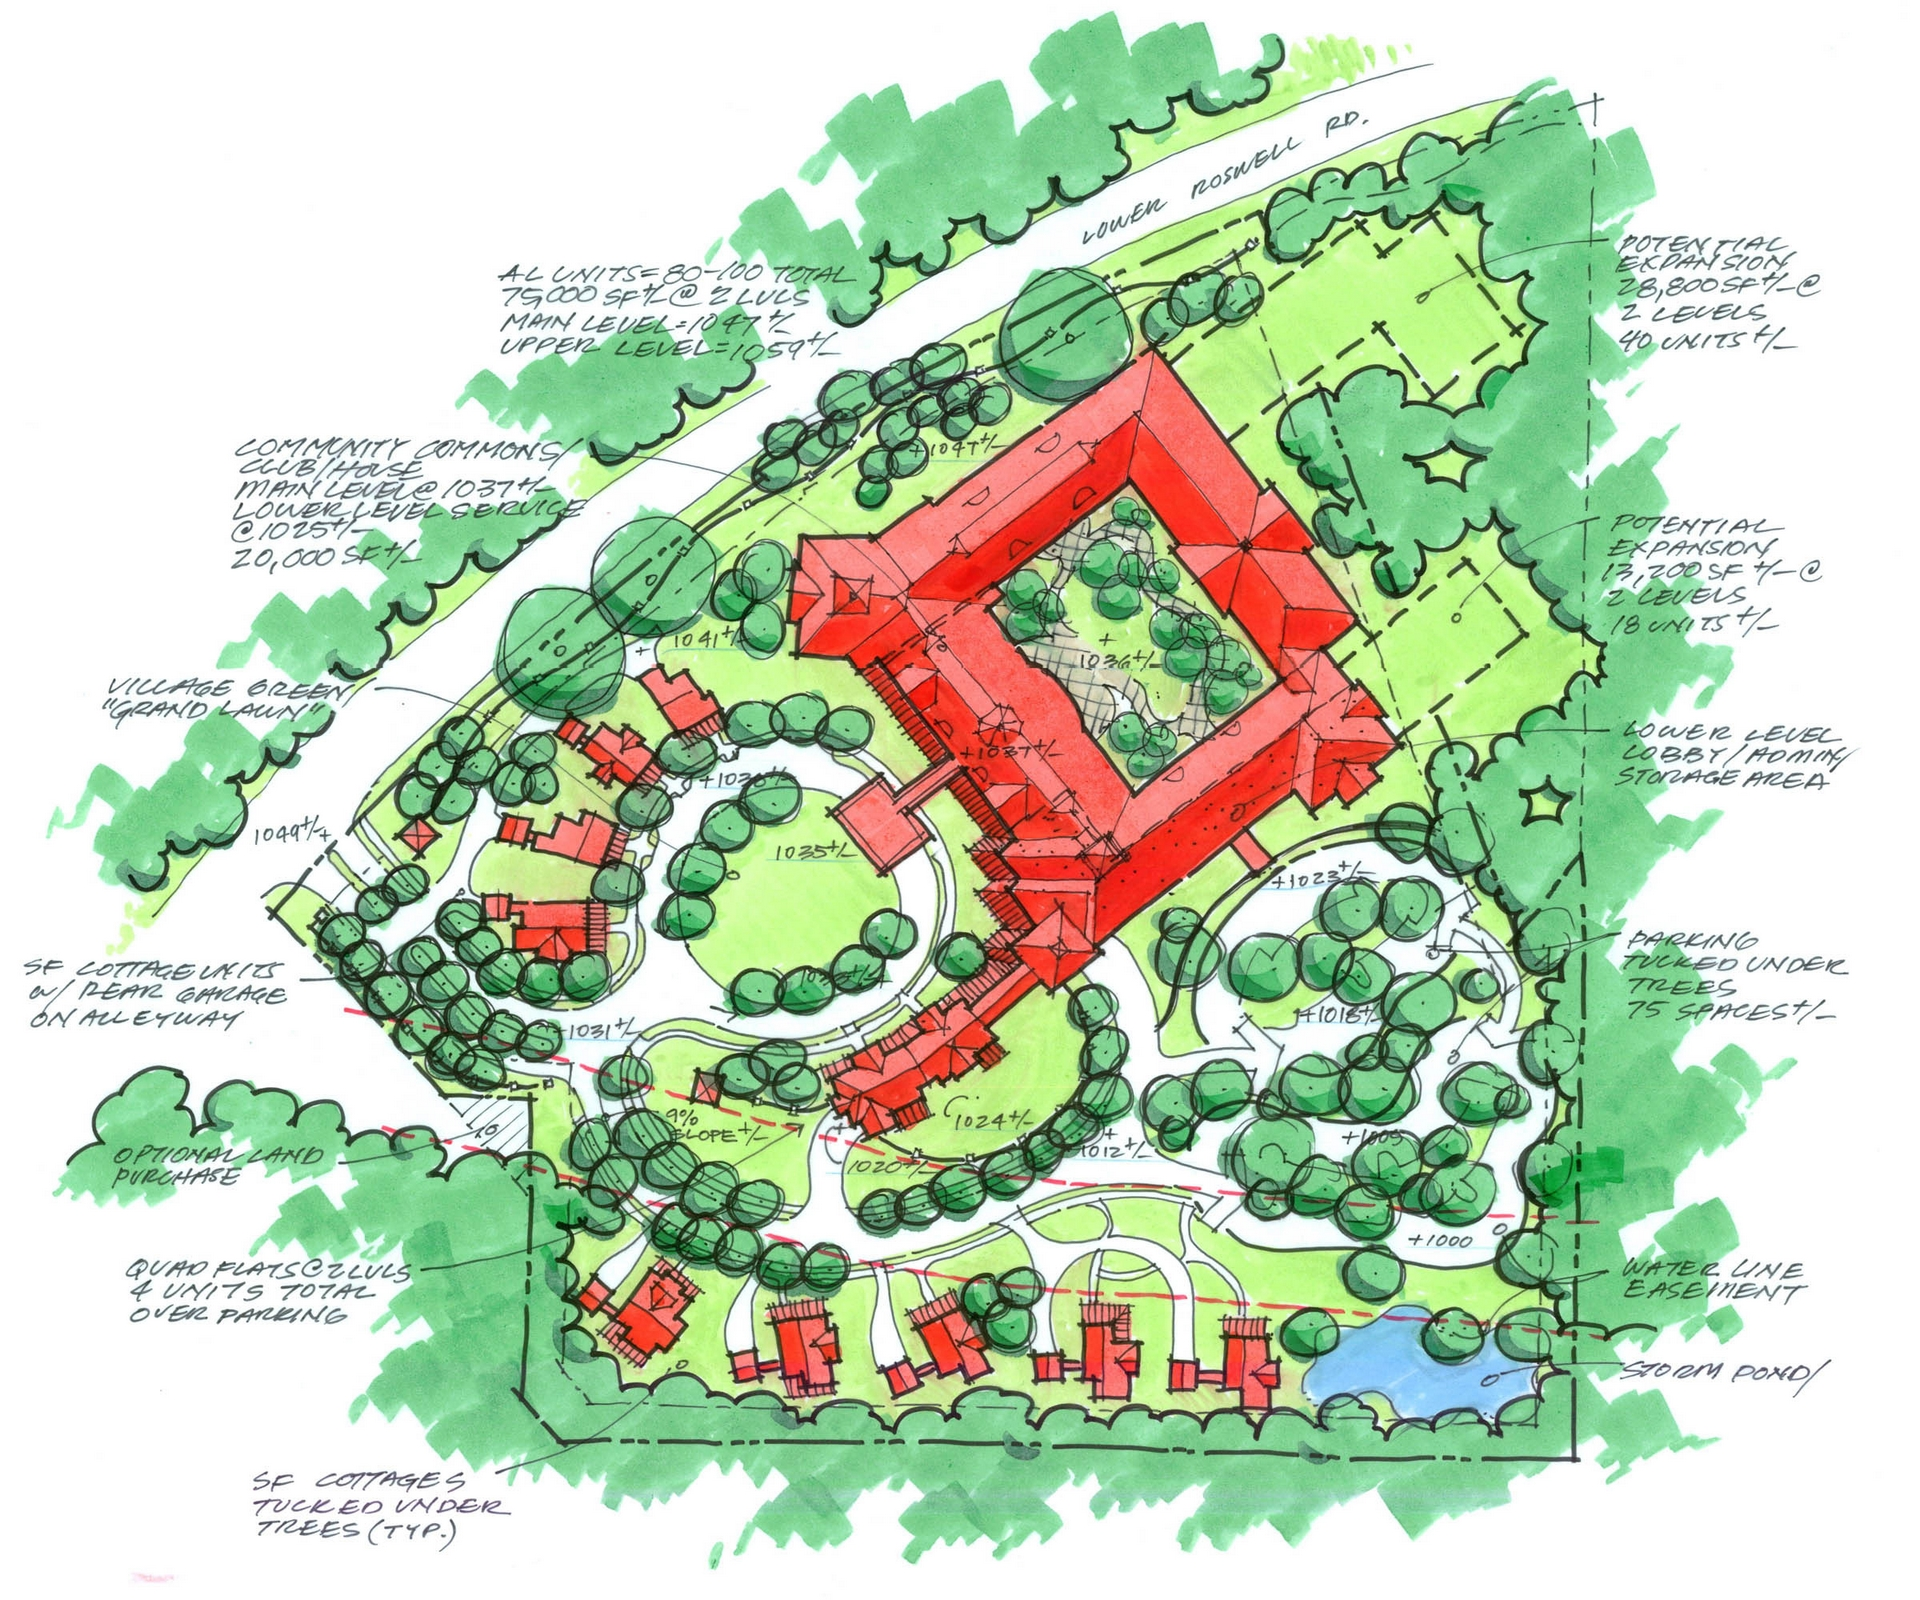 Senior Living, Landscape Architect, THW, THW Atlanta, Top Land Planning, Best Landscape Architects, Quick Site Analysis, Quick site concept planning, Master Planning